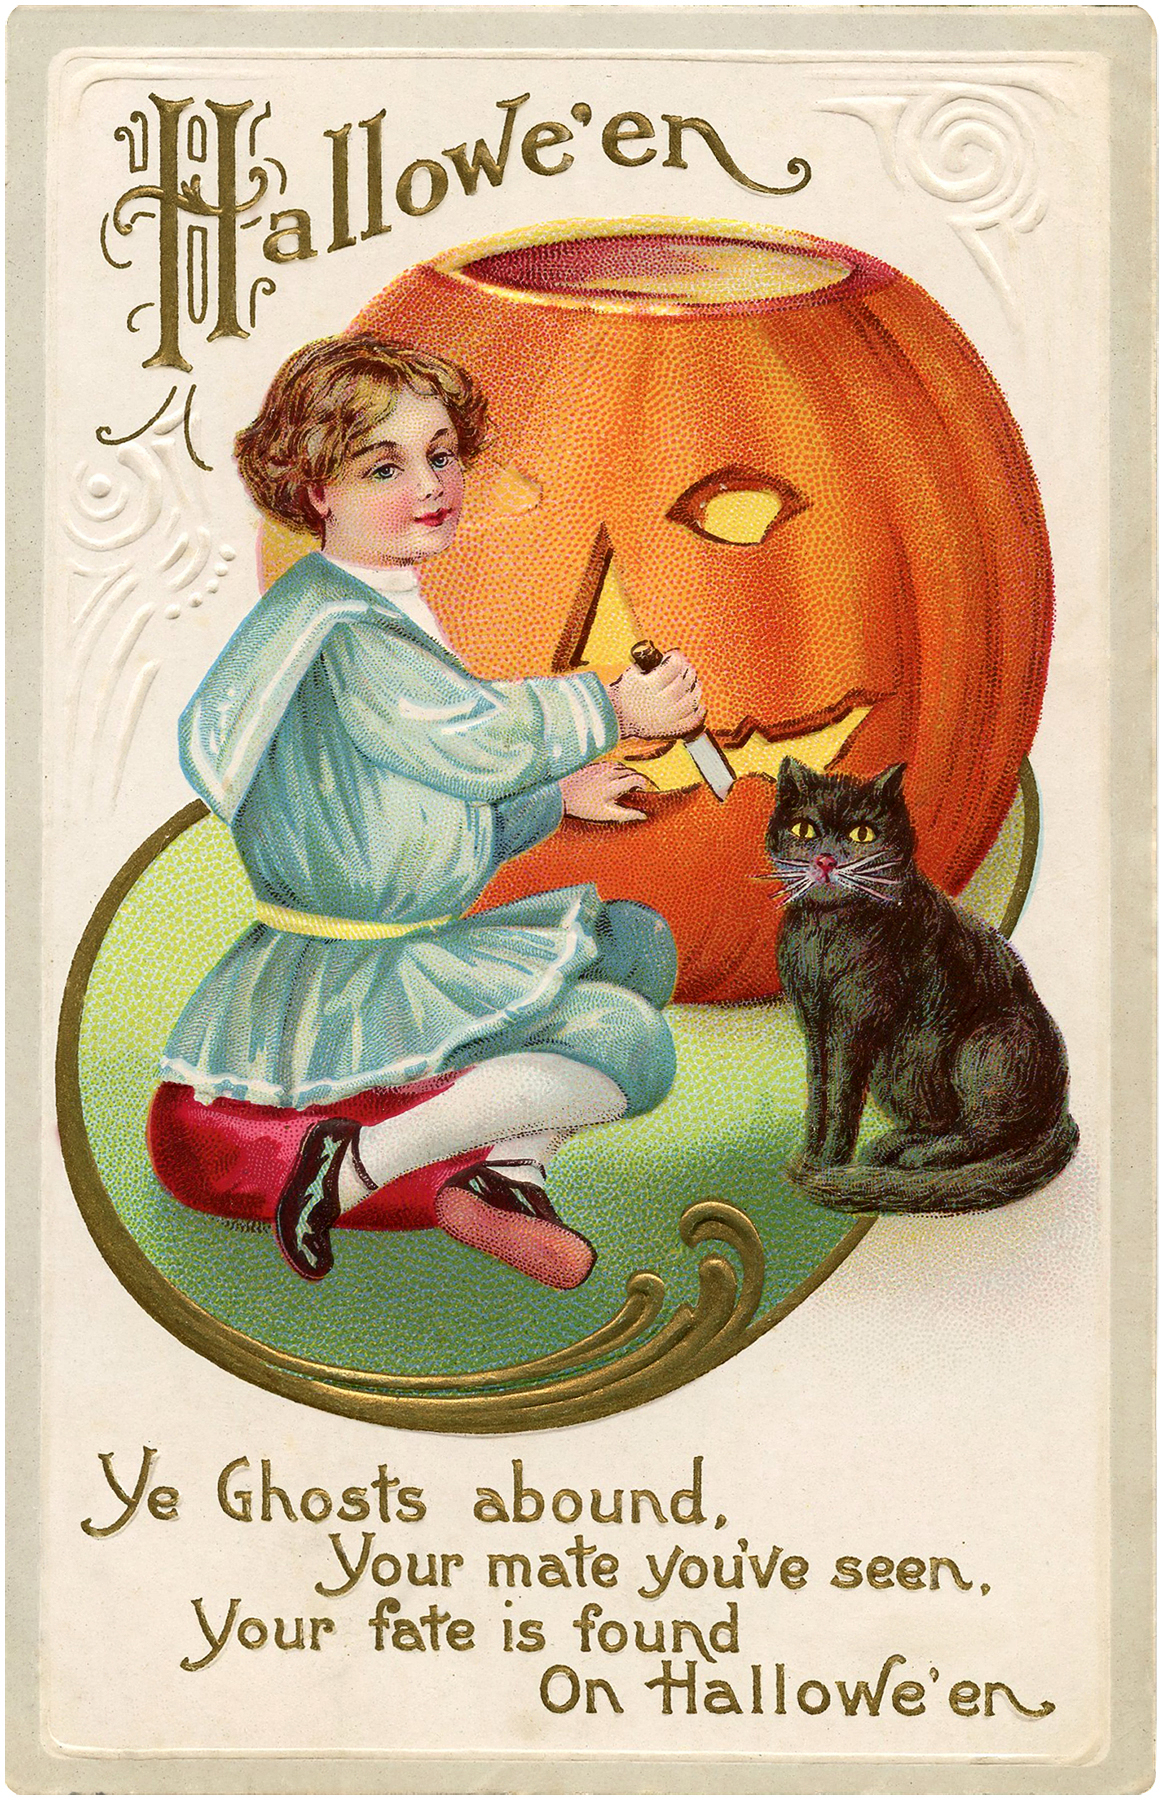 Vintage Pumpkin Carving Image! - The Graphics Fairy